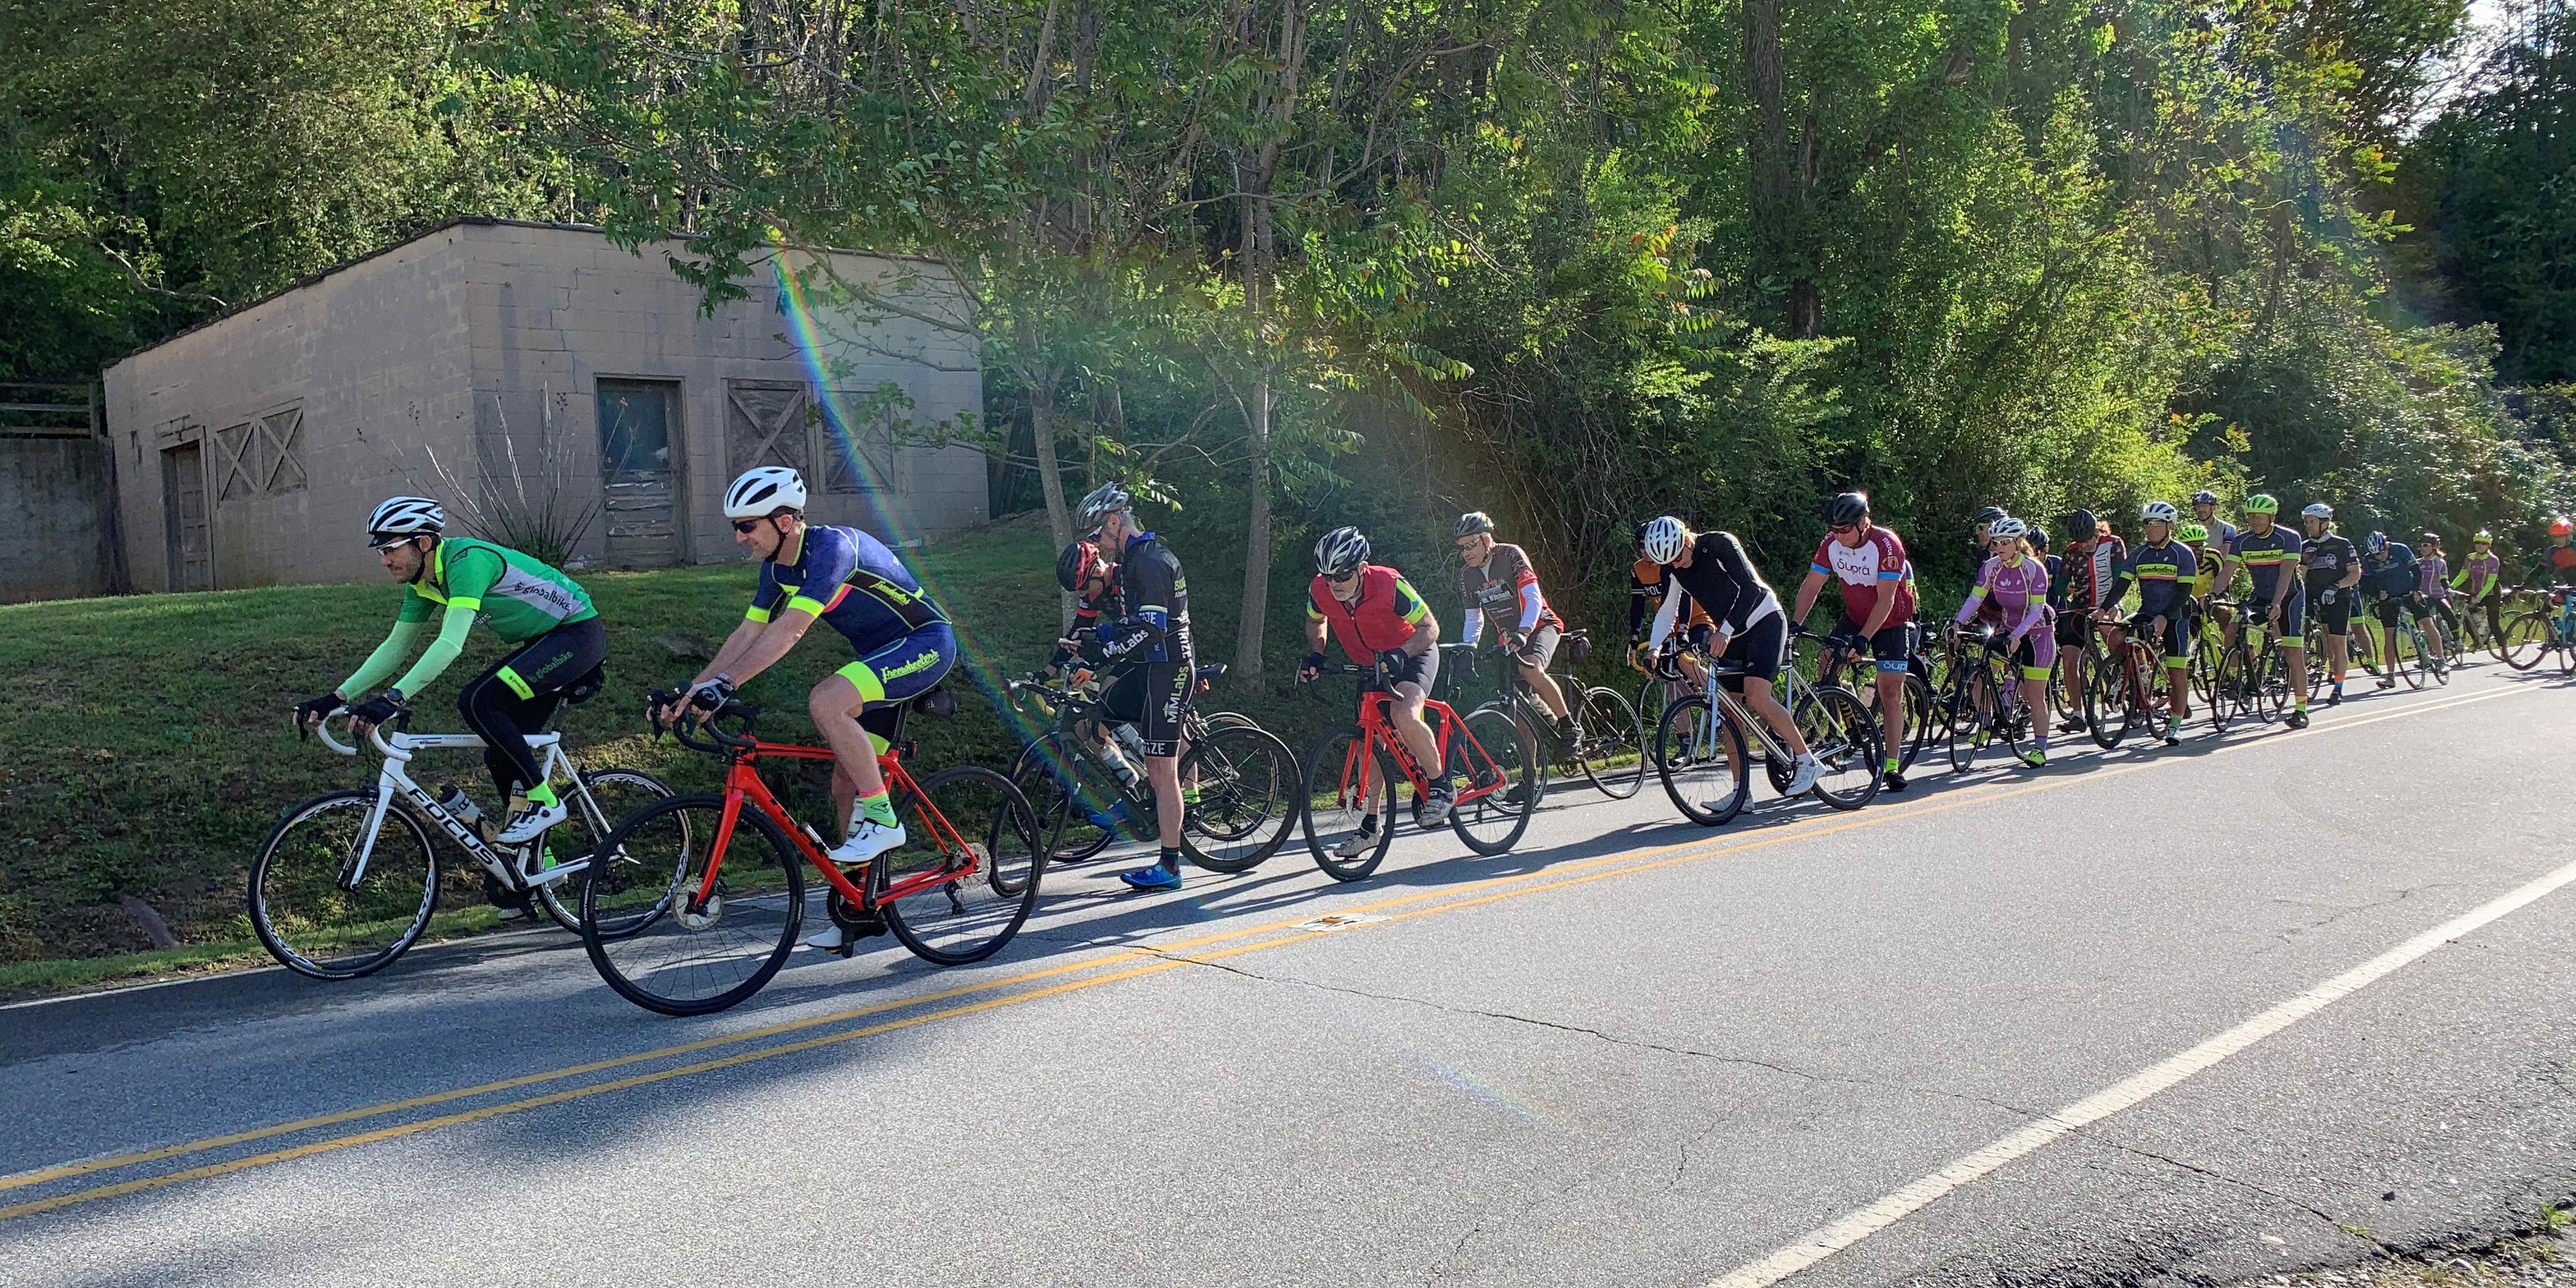 Riding for a cause: Annual cycling event supports cancer survivorship program